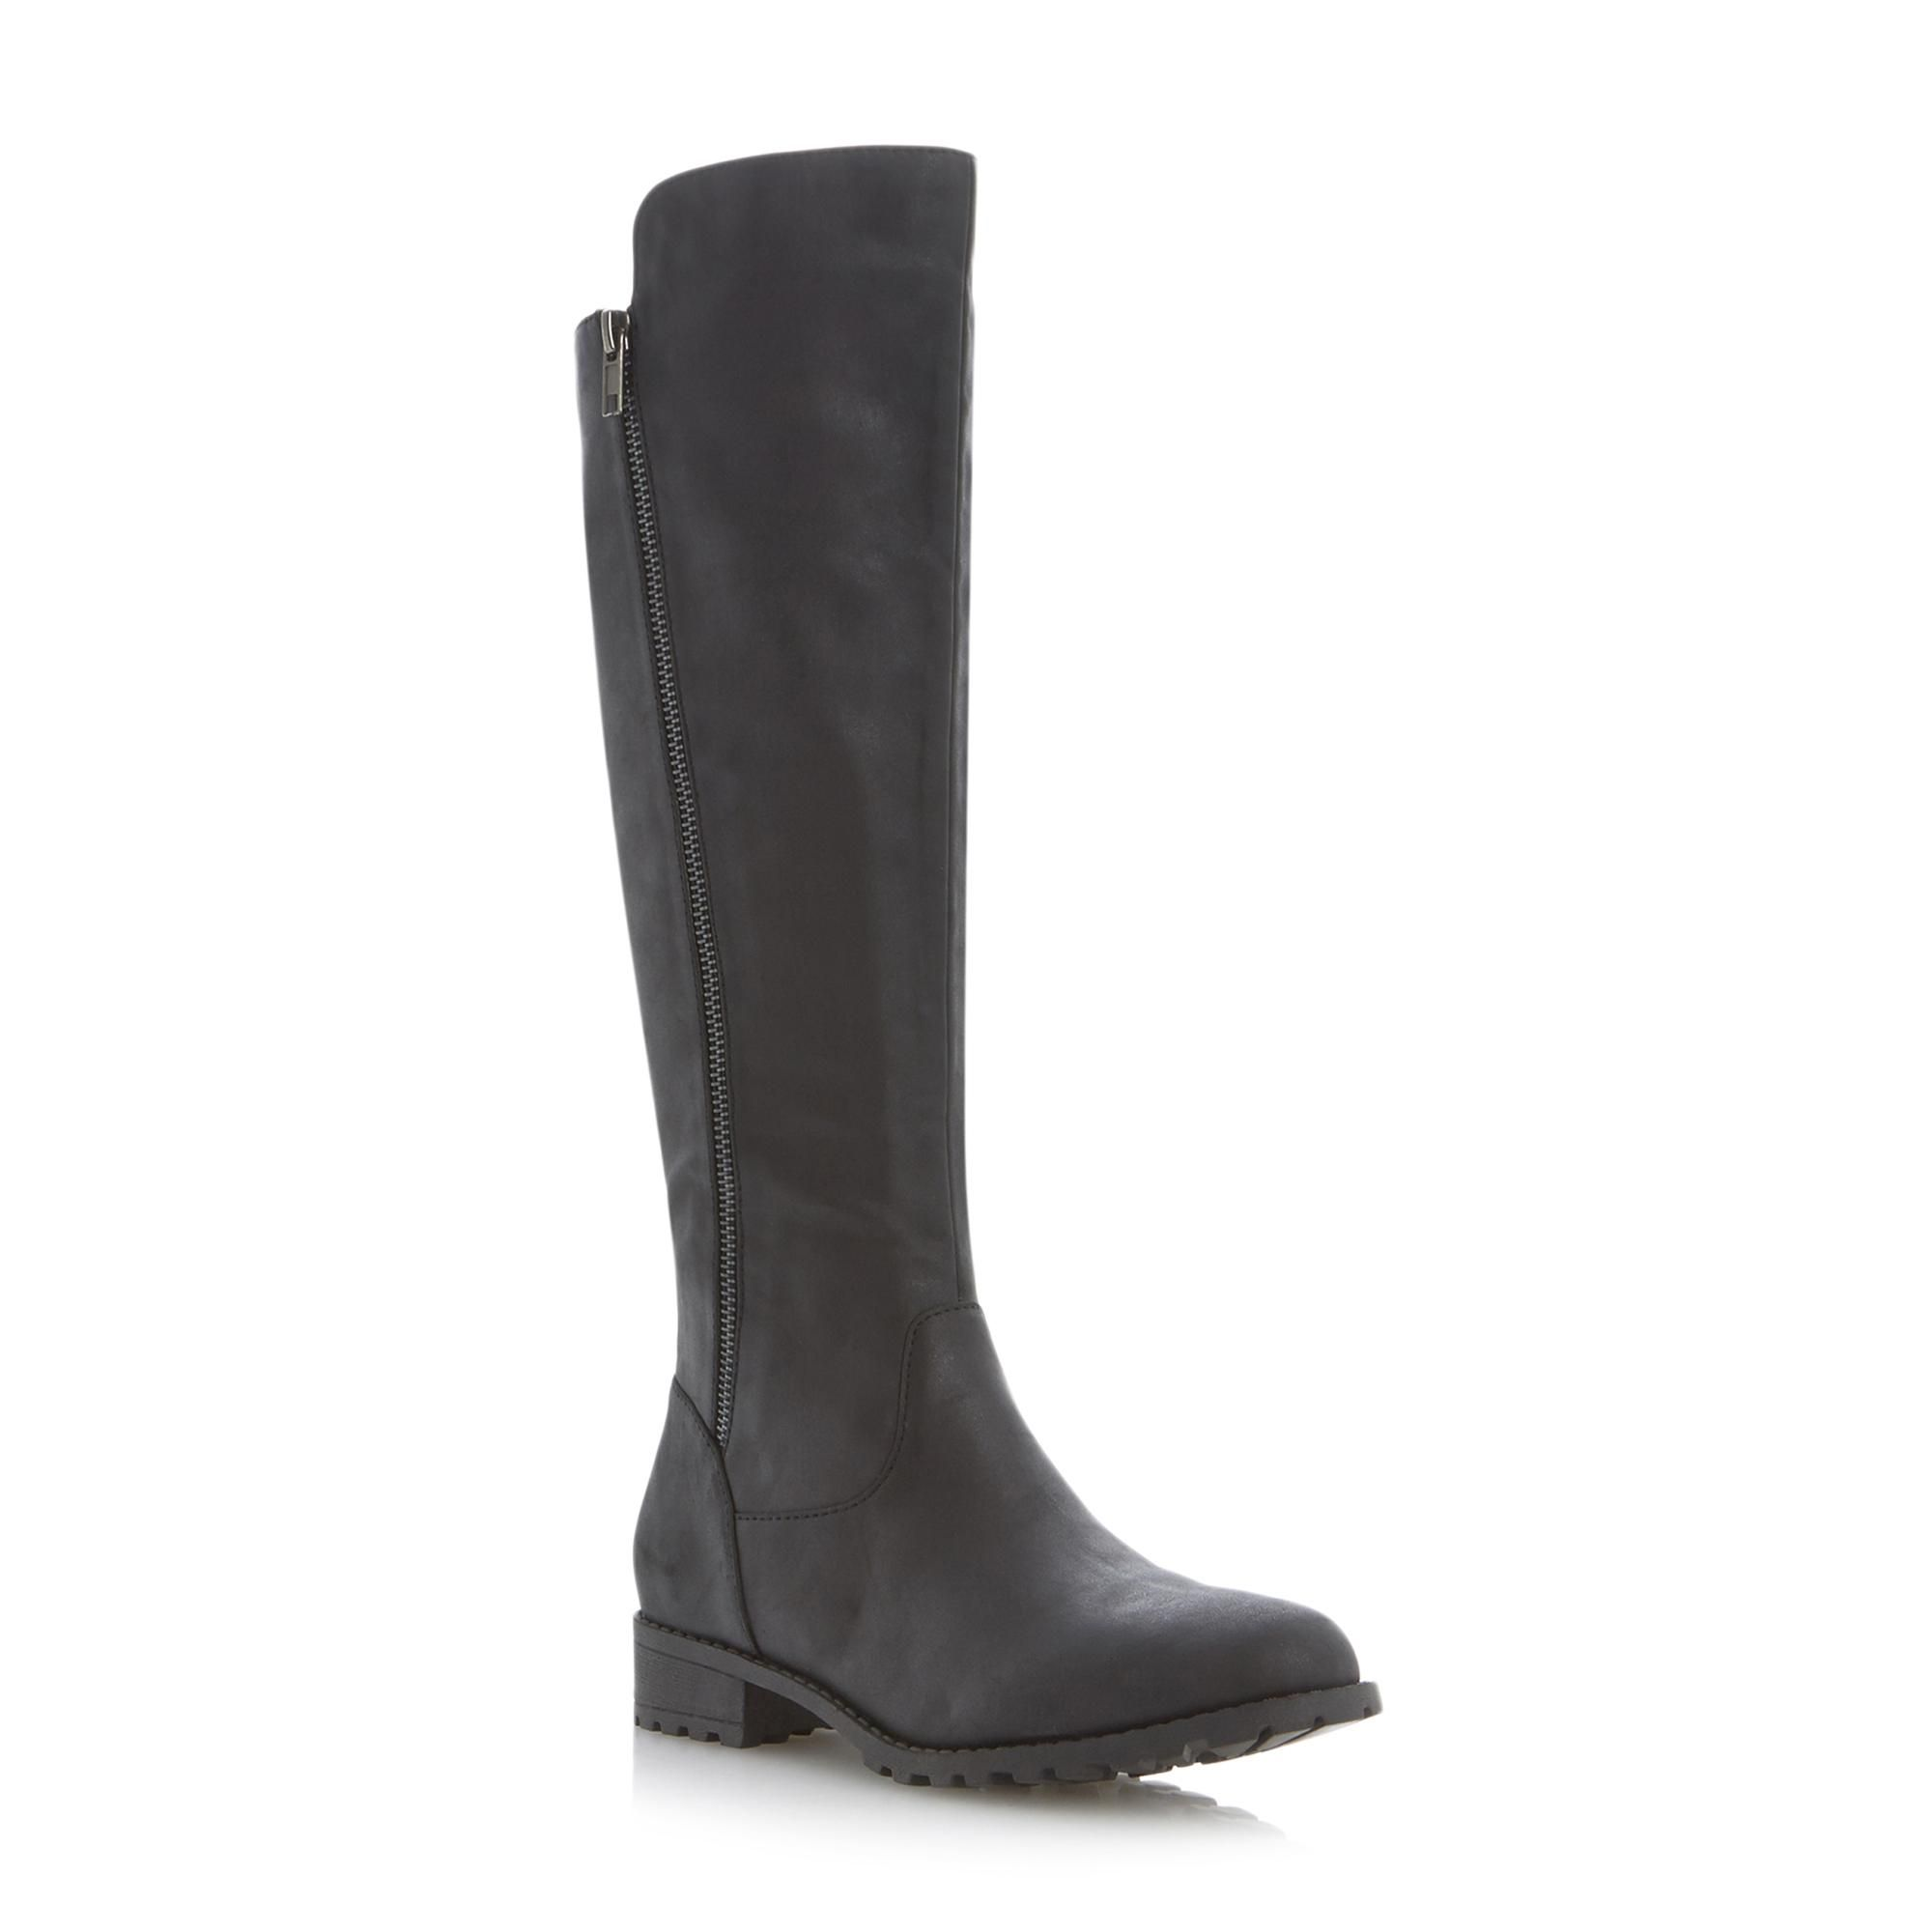 Boots, Knee high boots, Dune shoes